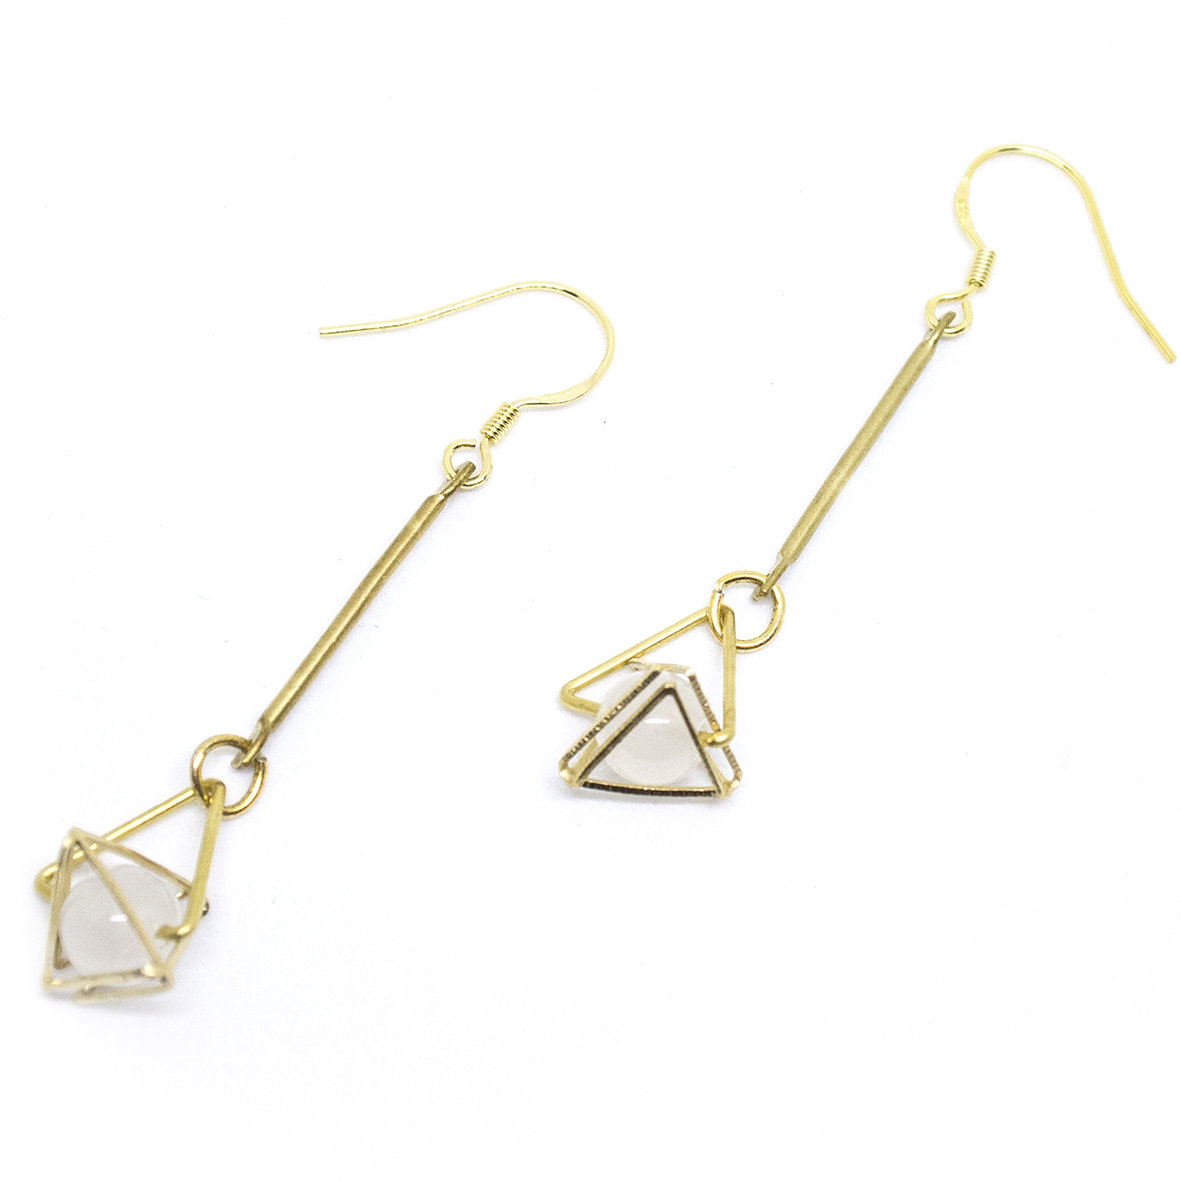 Golden triangle — white translucent beads, 925 golden hook, Hong Kong, fashion jewellery